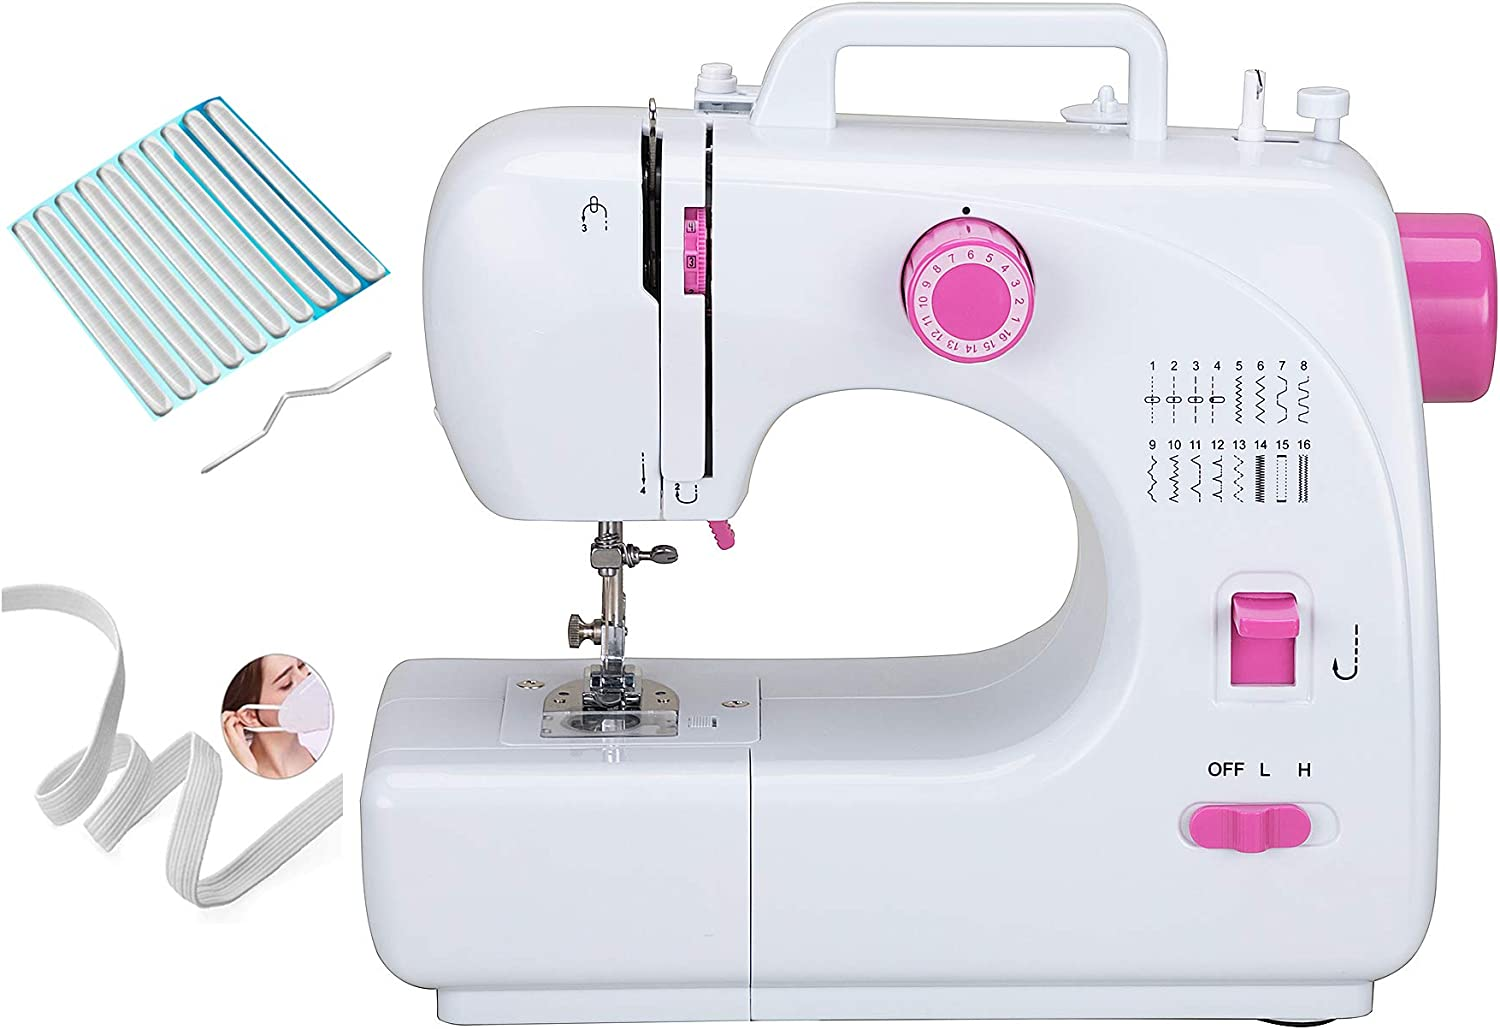 Portable Sewing Machine specialty Regular dealer shop for Adult Beginners M Household Electric